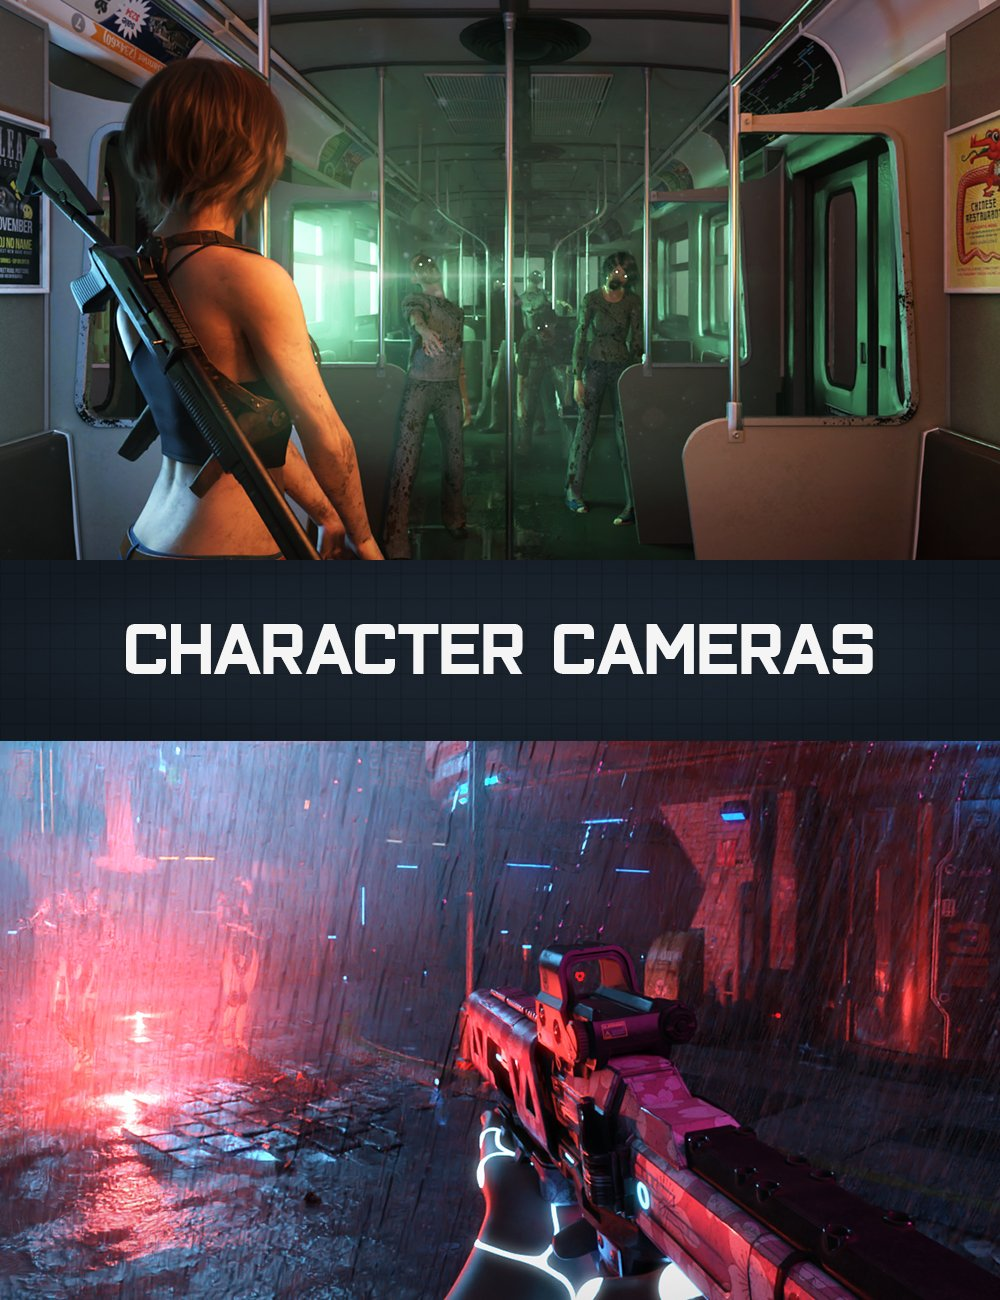 KACC Character Cameras for Genesis 8 by: KindredArts, 3D Models by Daz 3D